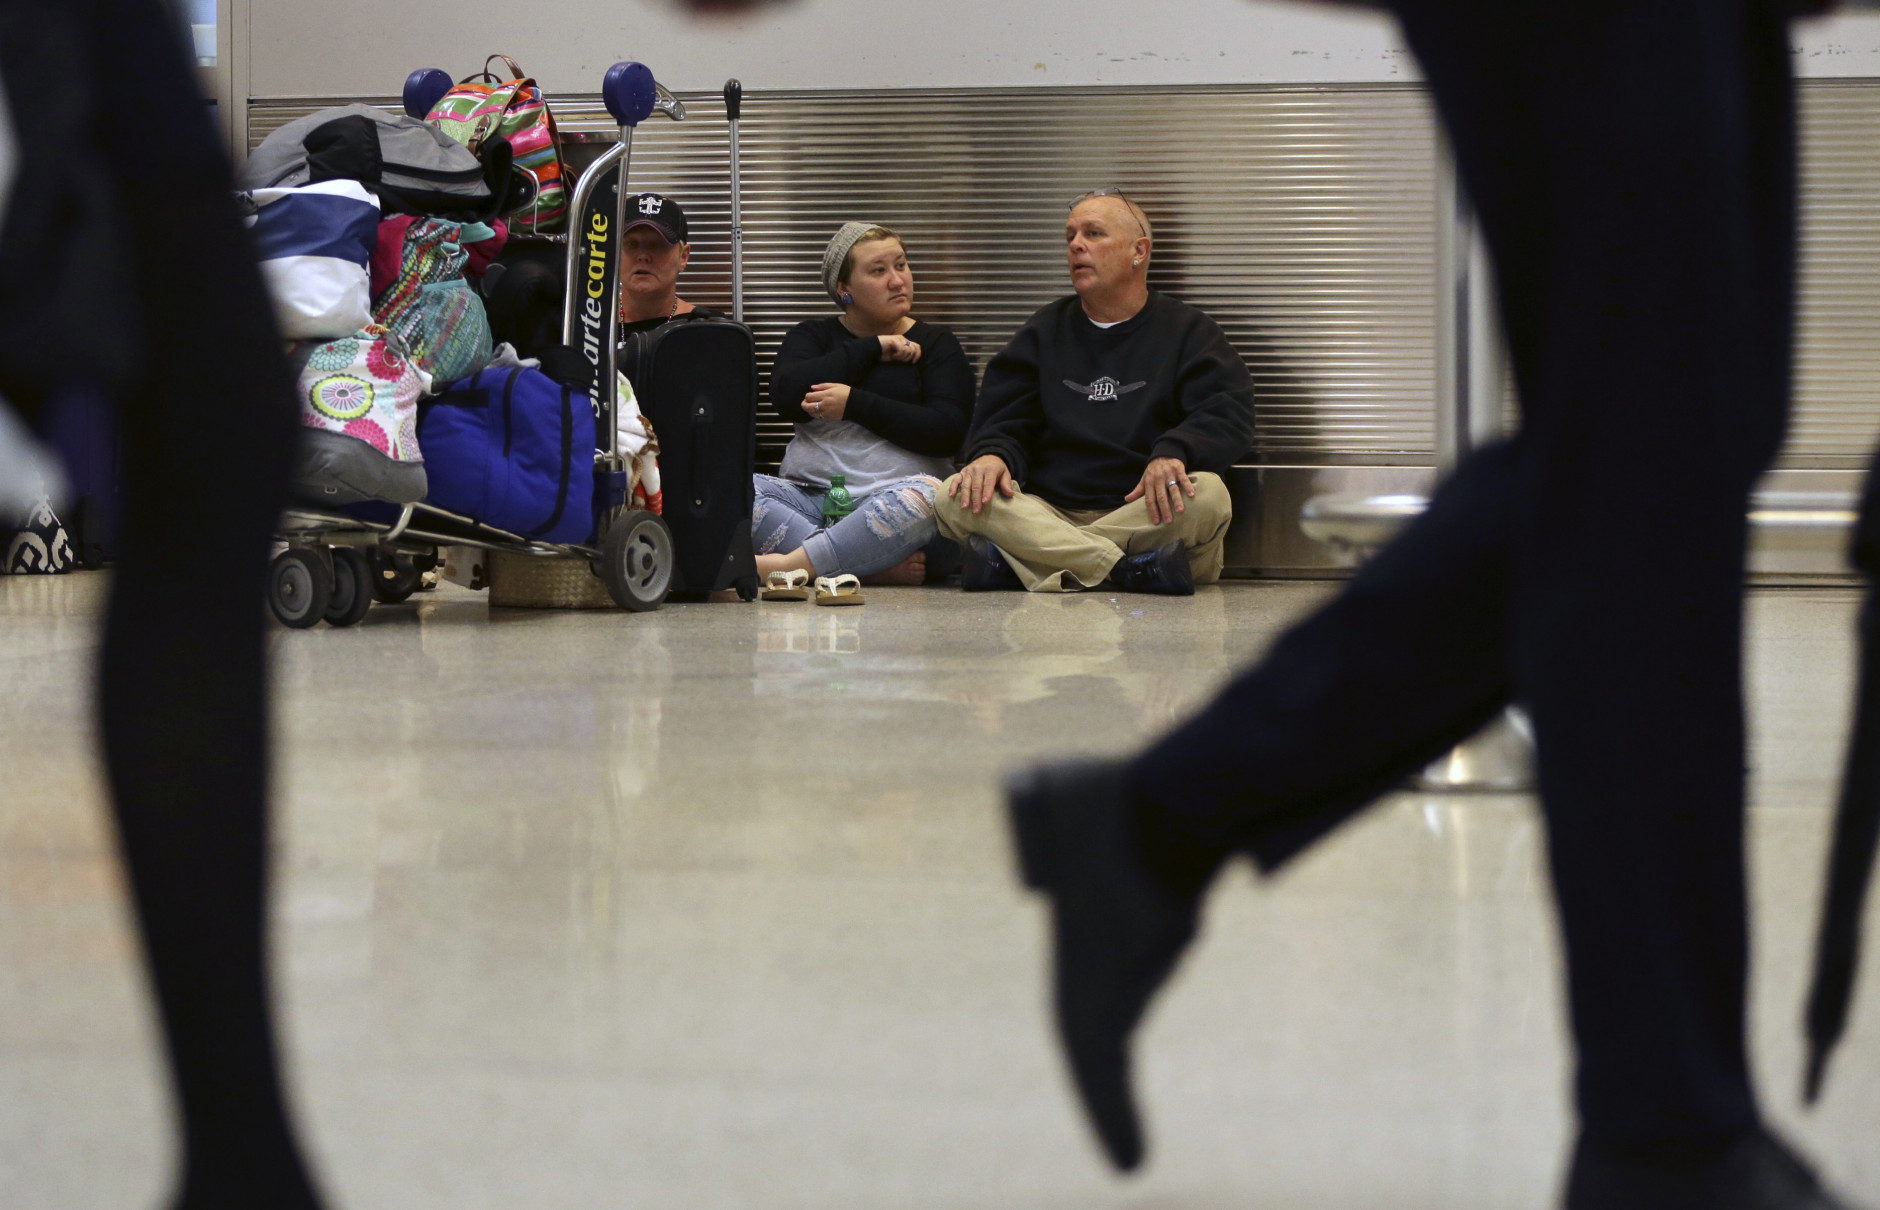 Tracey Shelton, left, Paige Willey, center, and Warren Willey, right, of Crisfield, Md., wait to reschedule a flight at Miami International Airport, as their flight to Baltimore was canceled, Friday, Jan. 22, 2016, in Miami. Airlines have canceled more than 2,700 flights Friday to, from or within the U.S., as a blizzard swings up the East Coast, according to flight tracking service FlightAware. (AP Photo/Lynne Sladky)